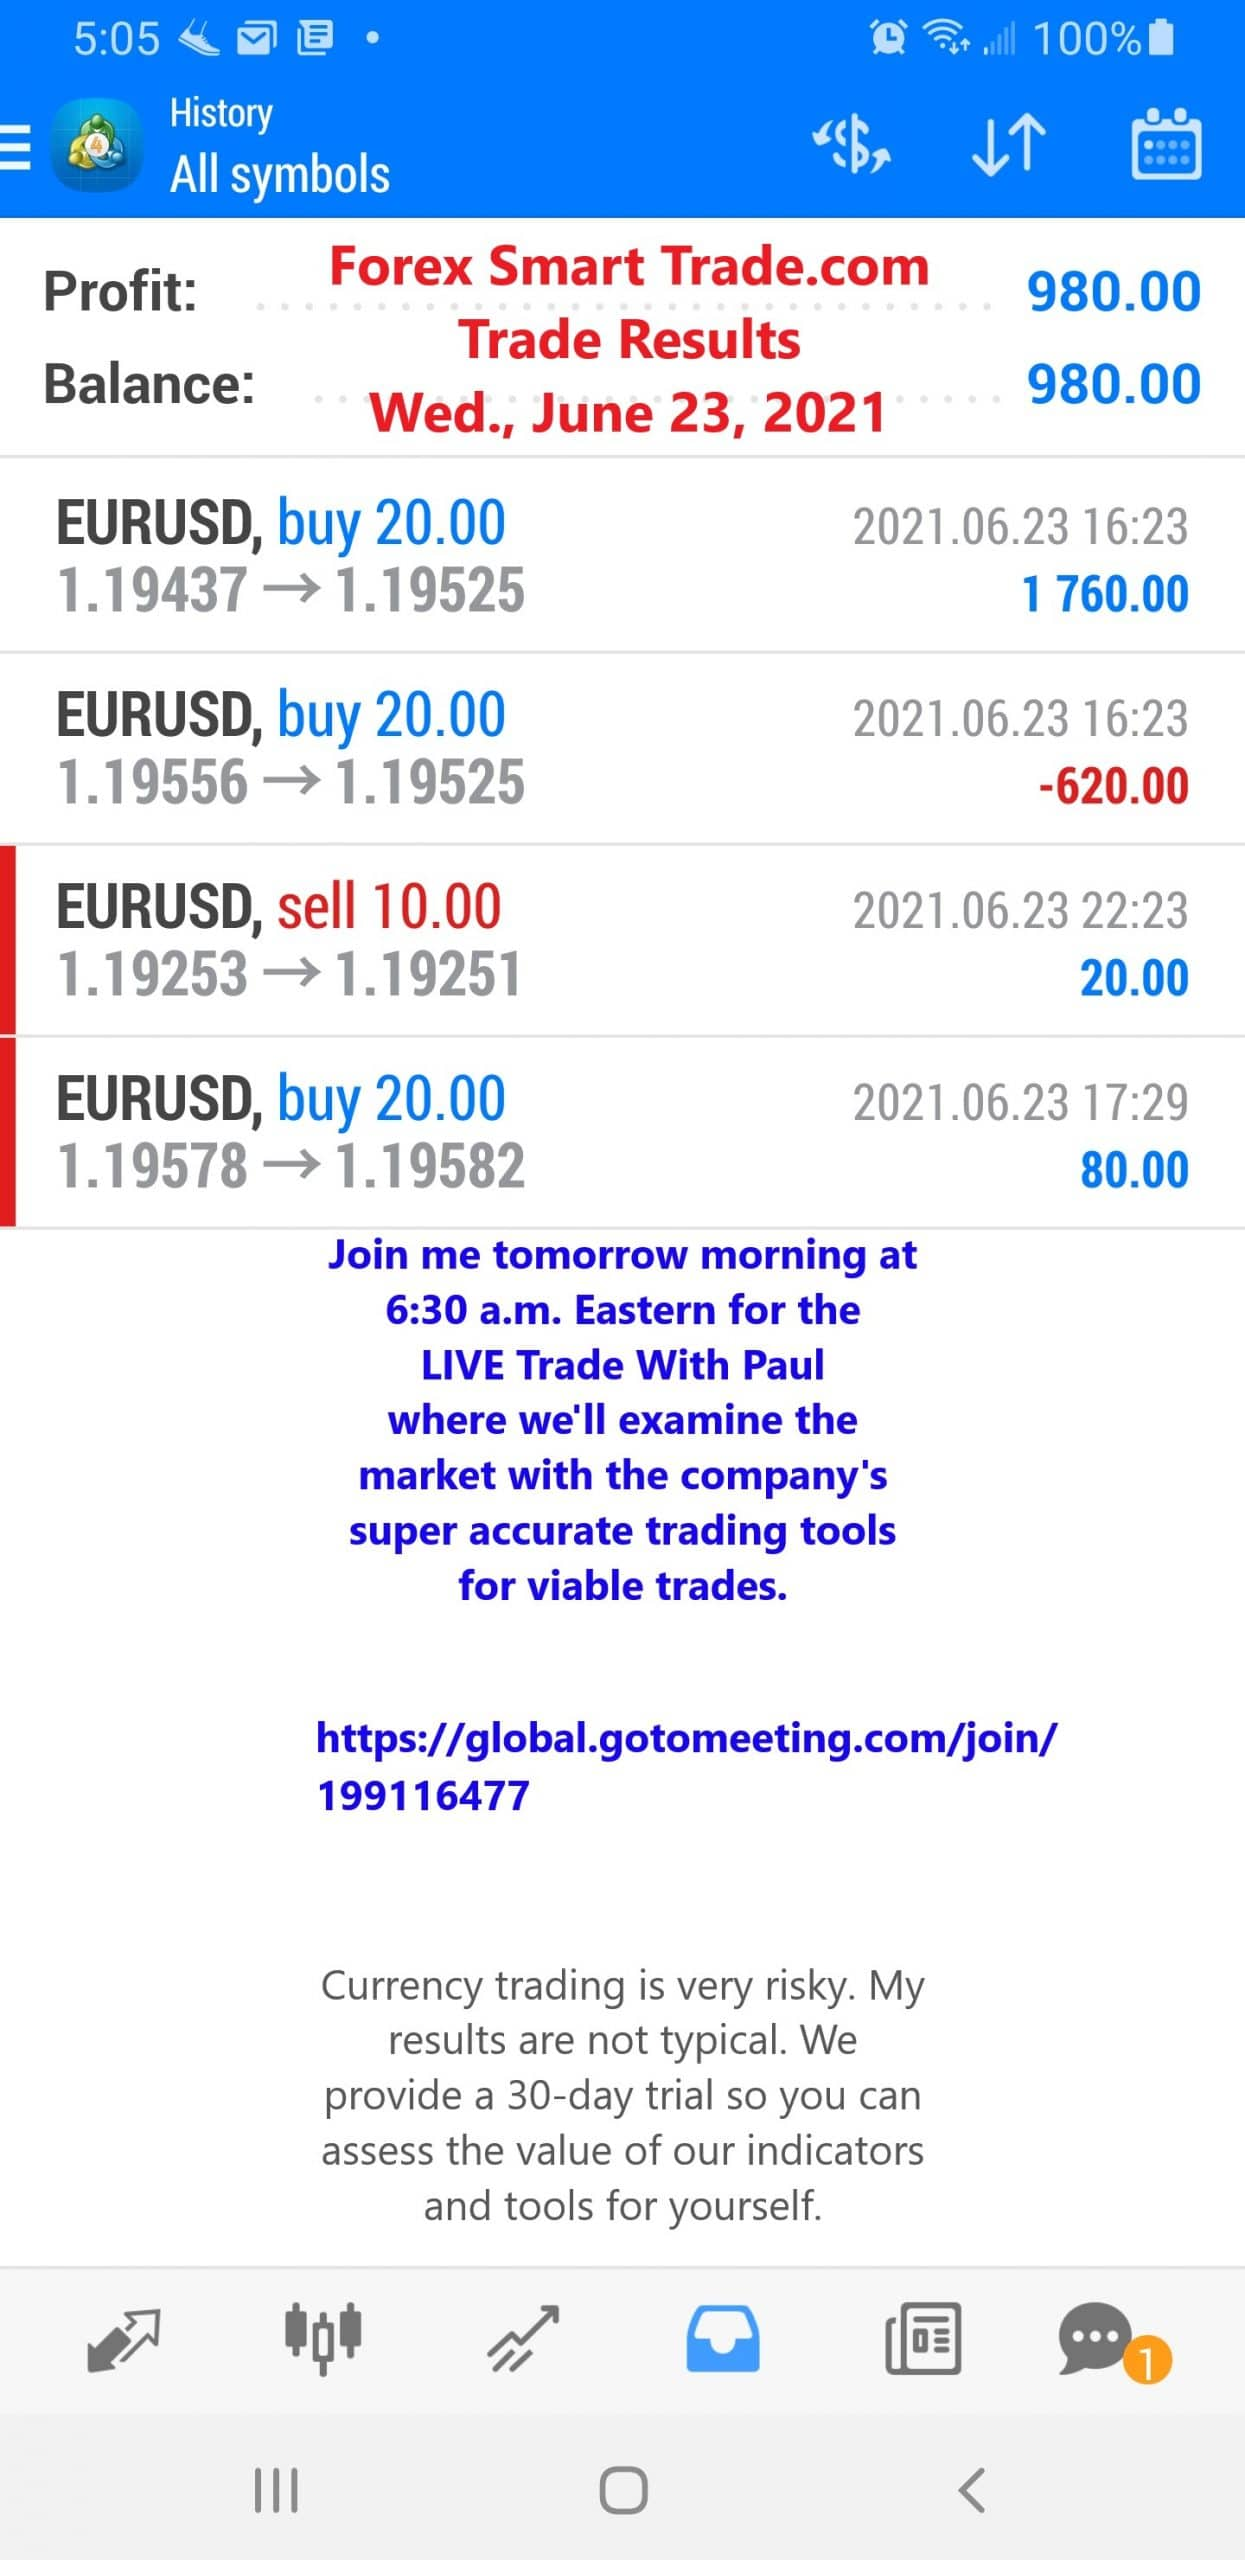 Trade Results Wed June 23, 2021 - Forex Smart Trade